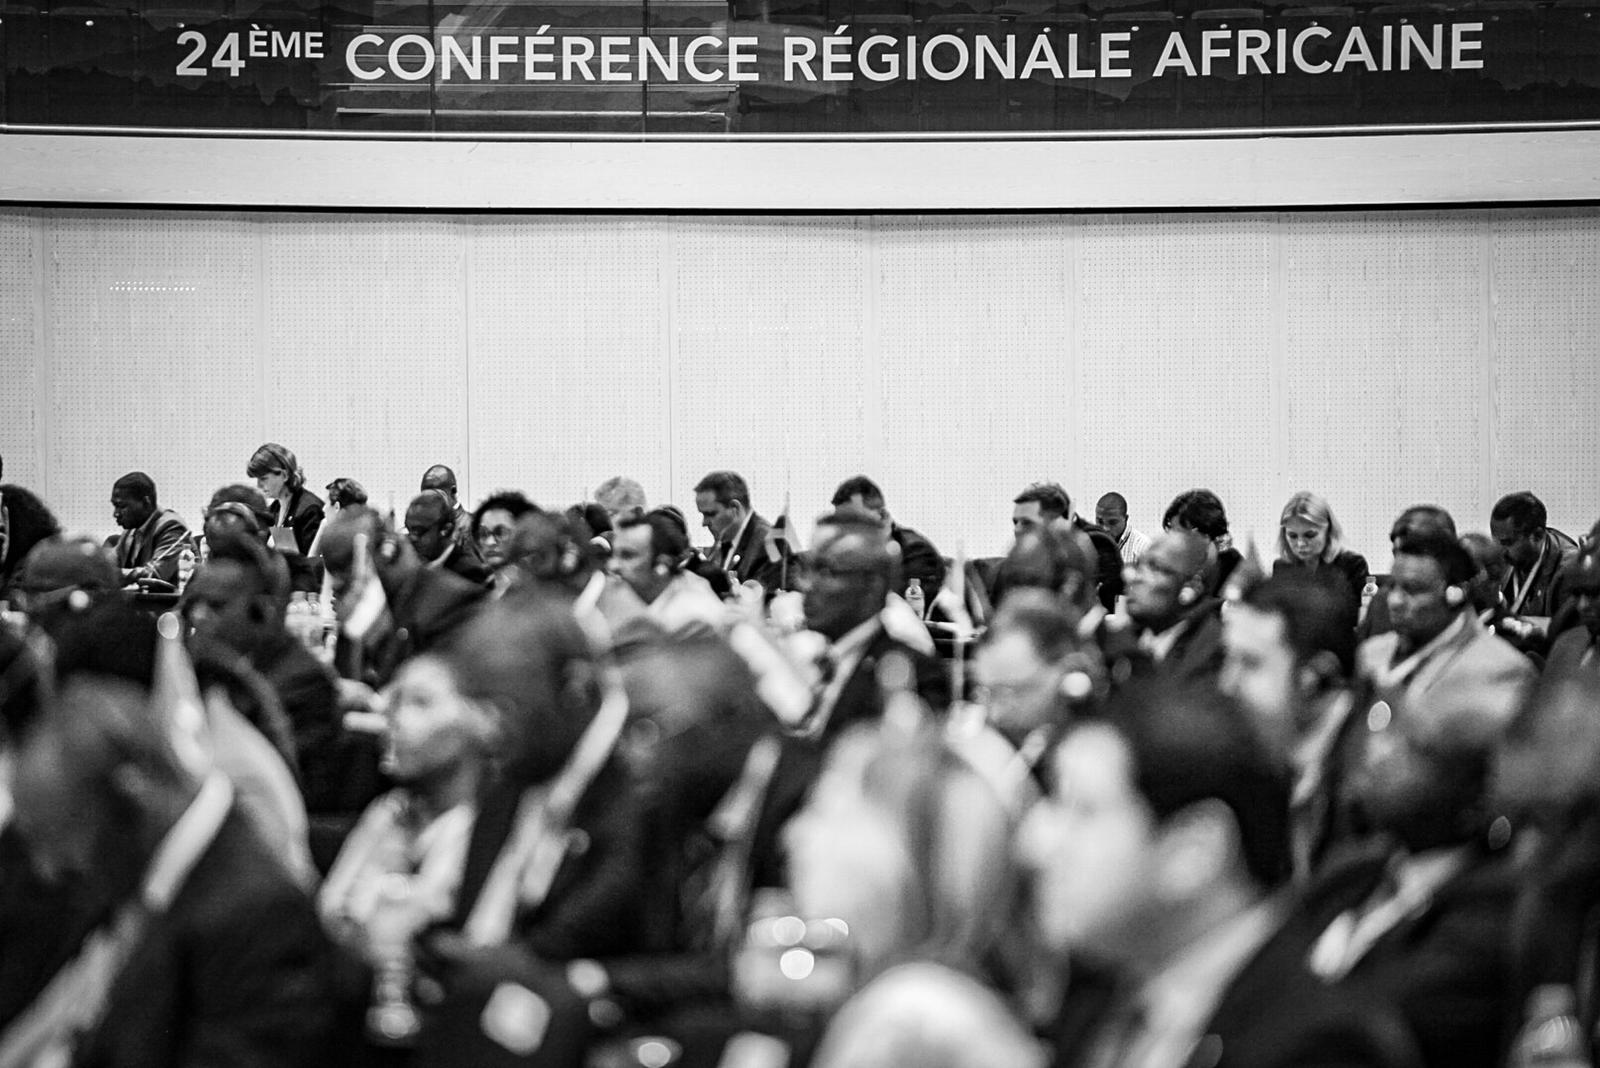 Terrorism and organized crime are the main issues being addressed at the INTERPOL African Regional Conference in Rwanda.